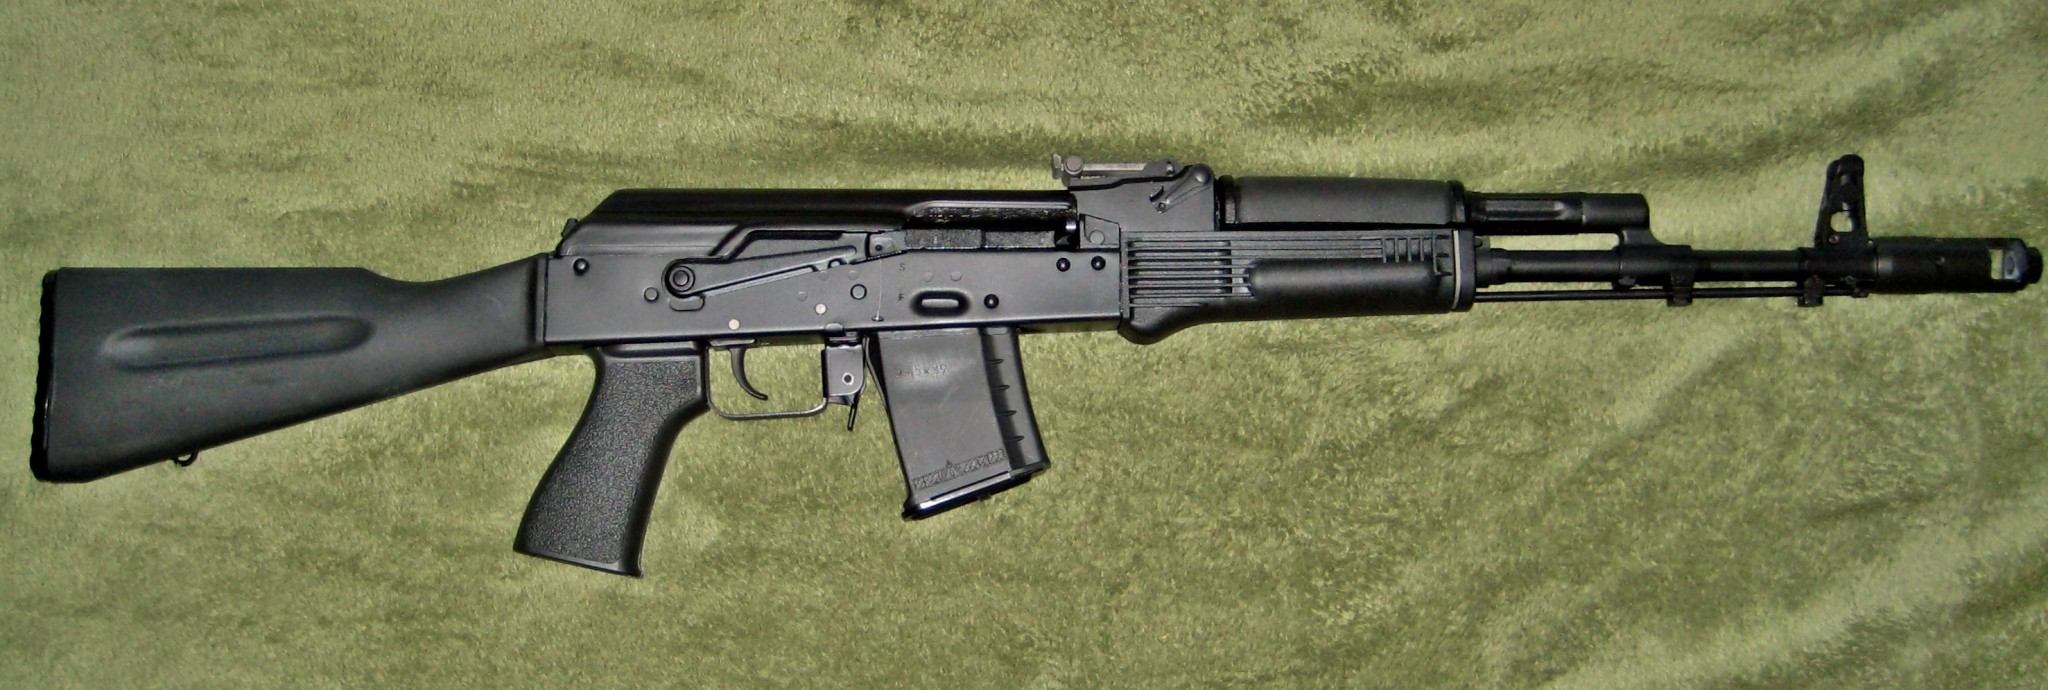 Tail of the AK – Part 4 – The Arsenal – A Blog about